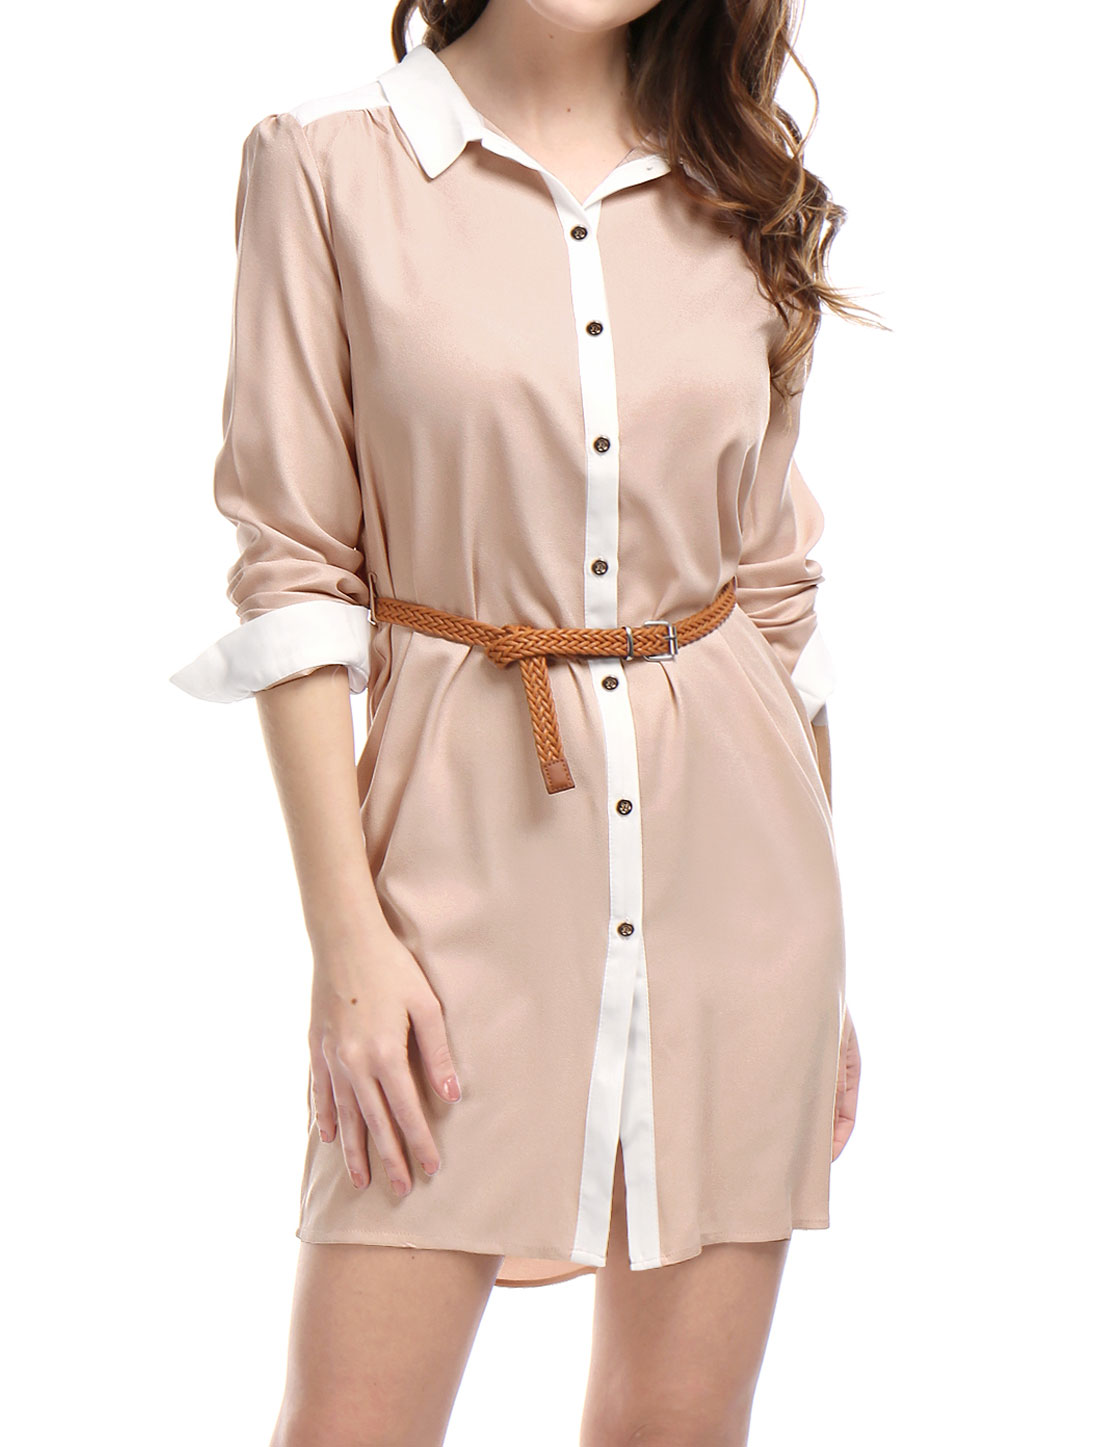 Women Contrast Color Long Sleeves Above Knee Belted Shirt Dress Pink M